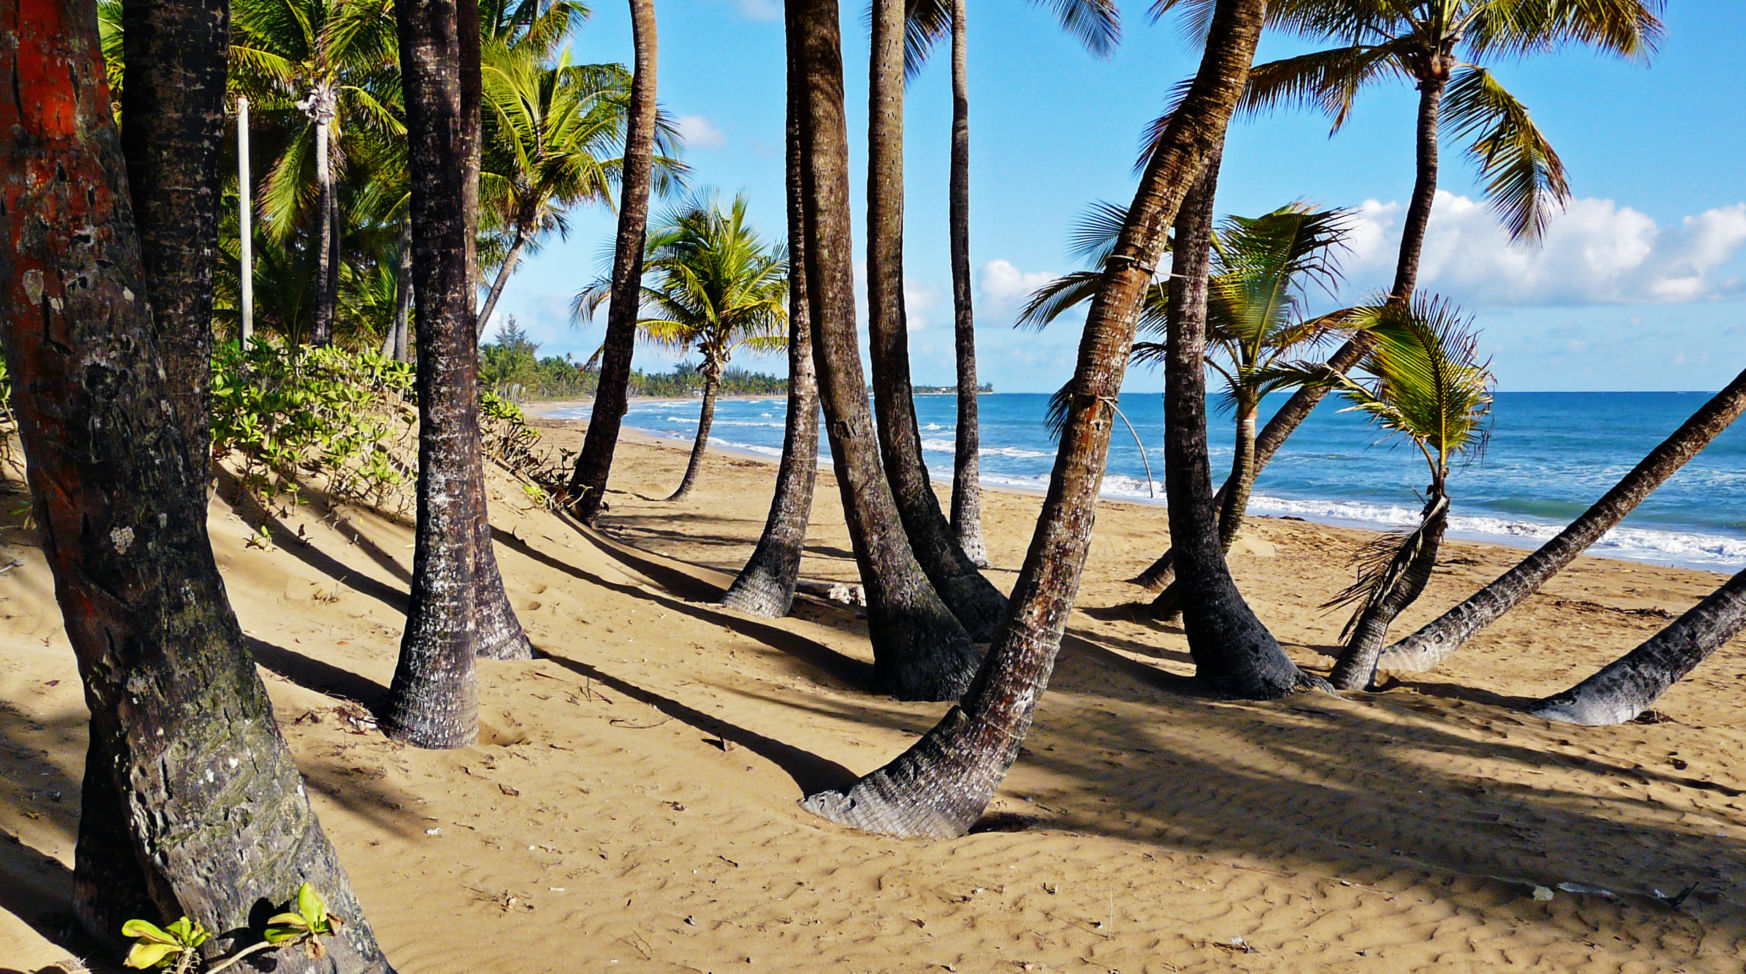 Palm trees on the beach in Puerto Rico